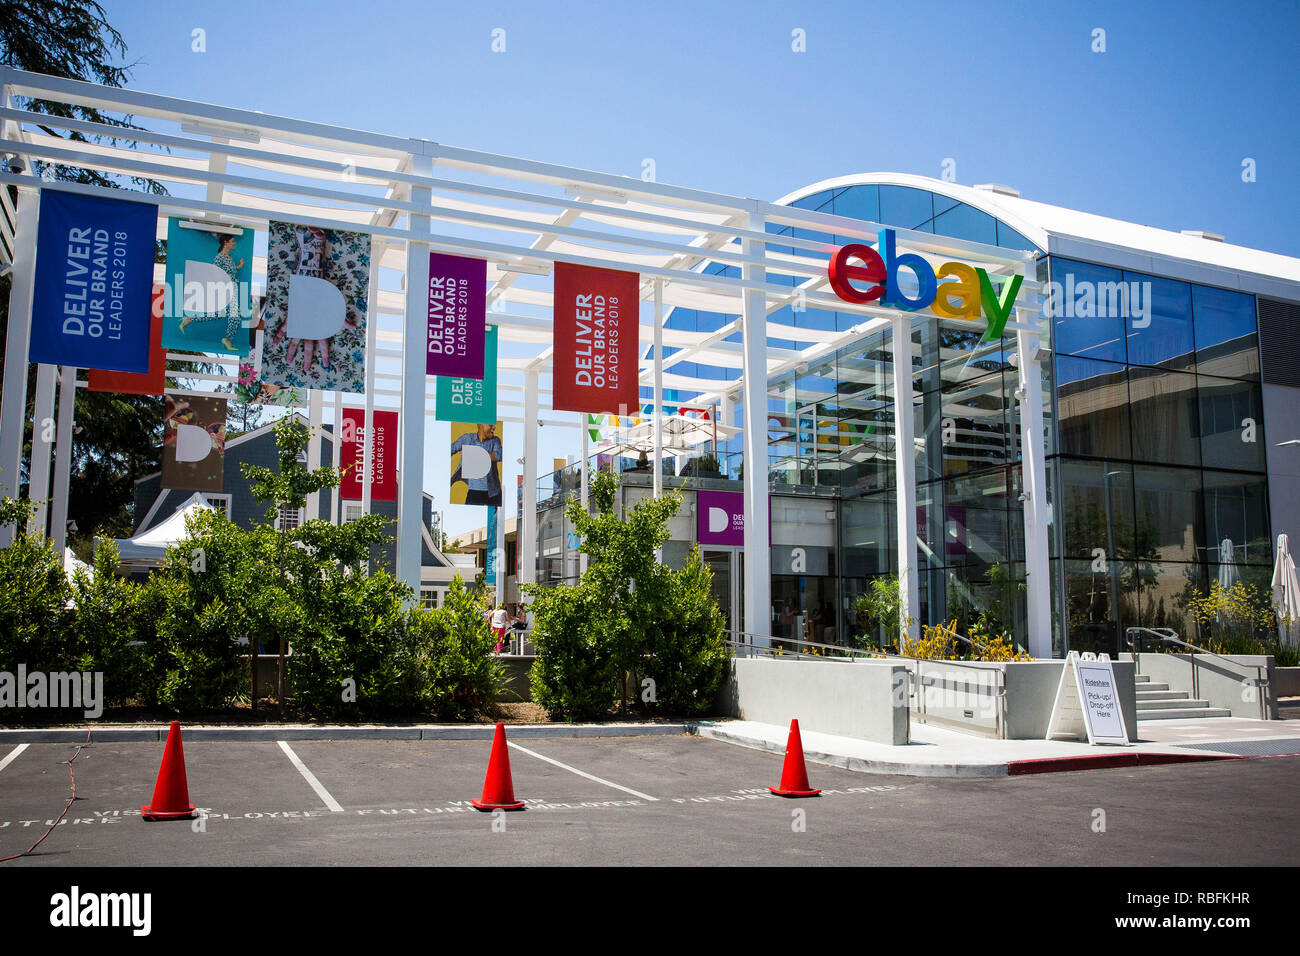 San Jose California Usa May 21 2018 Ebay S Headquarters Campus Welcome Center Named Main Street Ebay Inc Is A Global E Commerce Leader Stock Photo Alamy